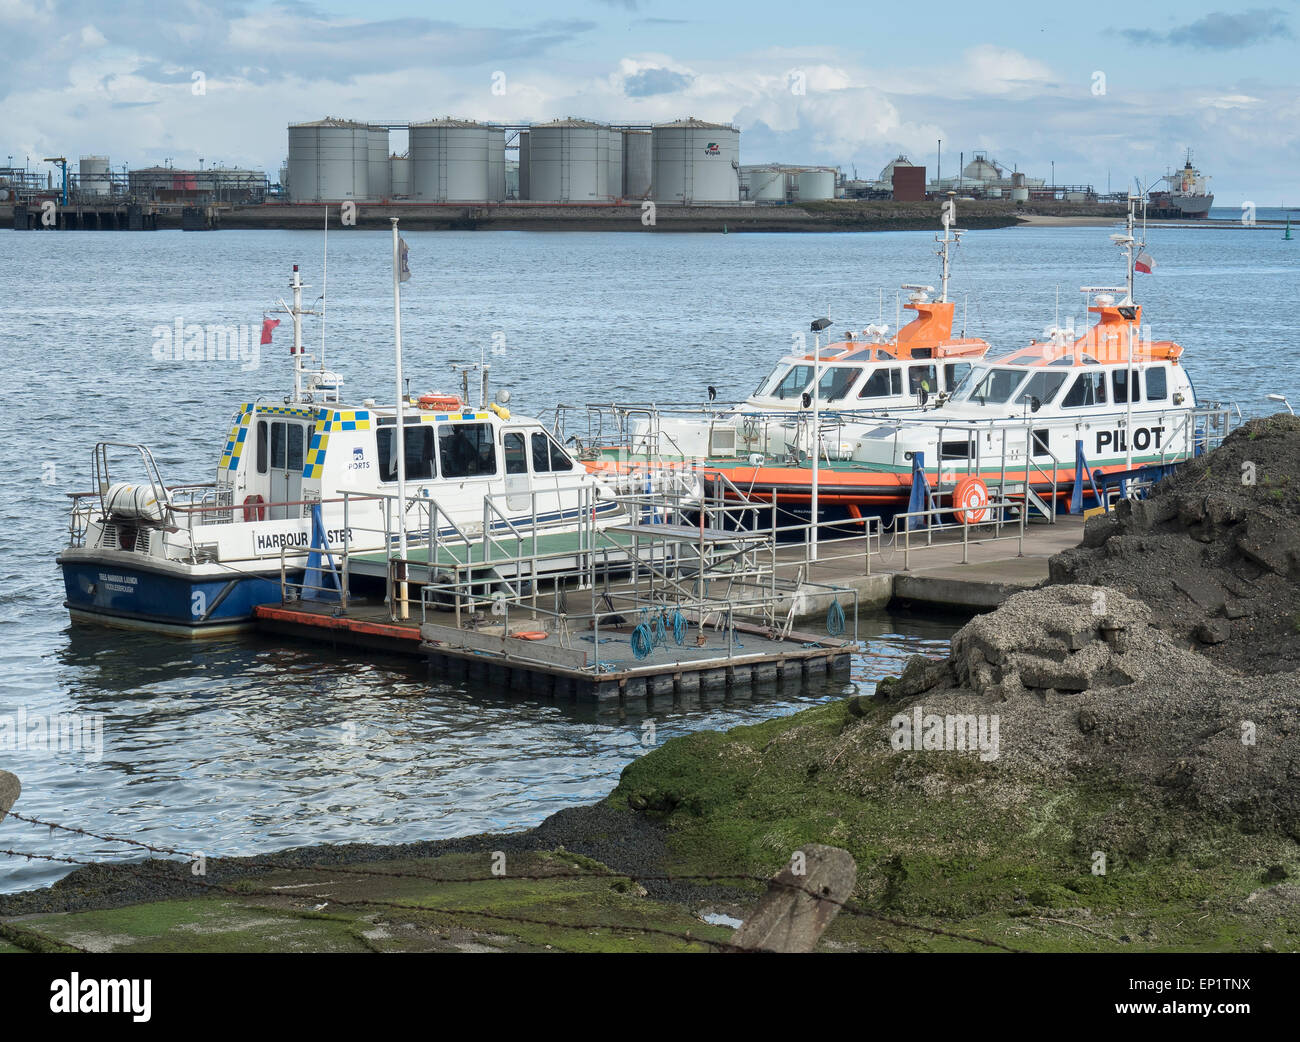 Harbour Masters Launch and Tees Pilot Launches, Teesport, River Tees - Stock Image